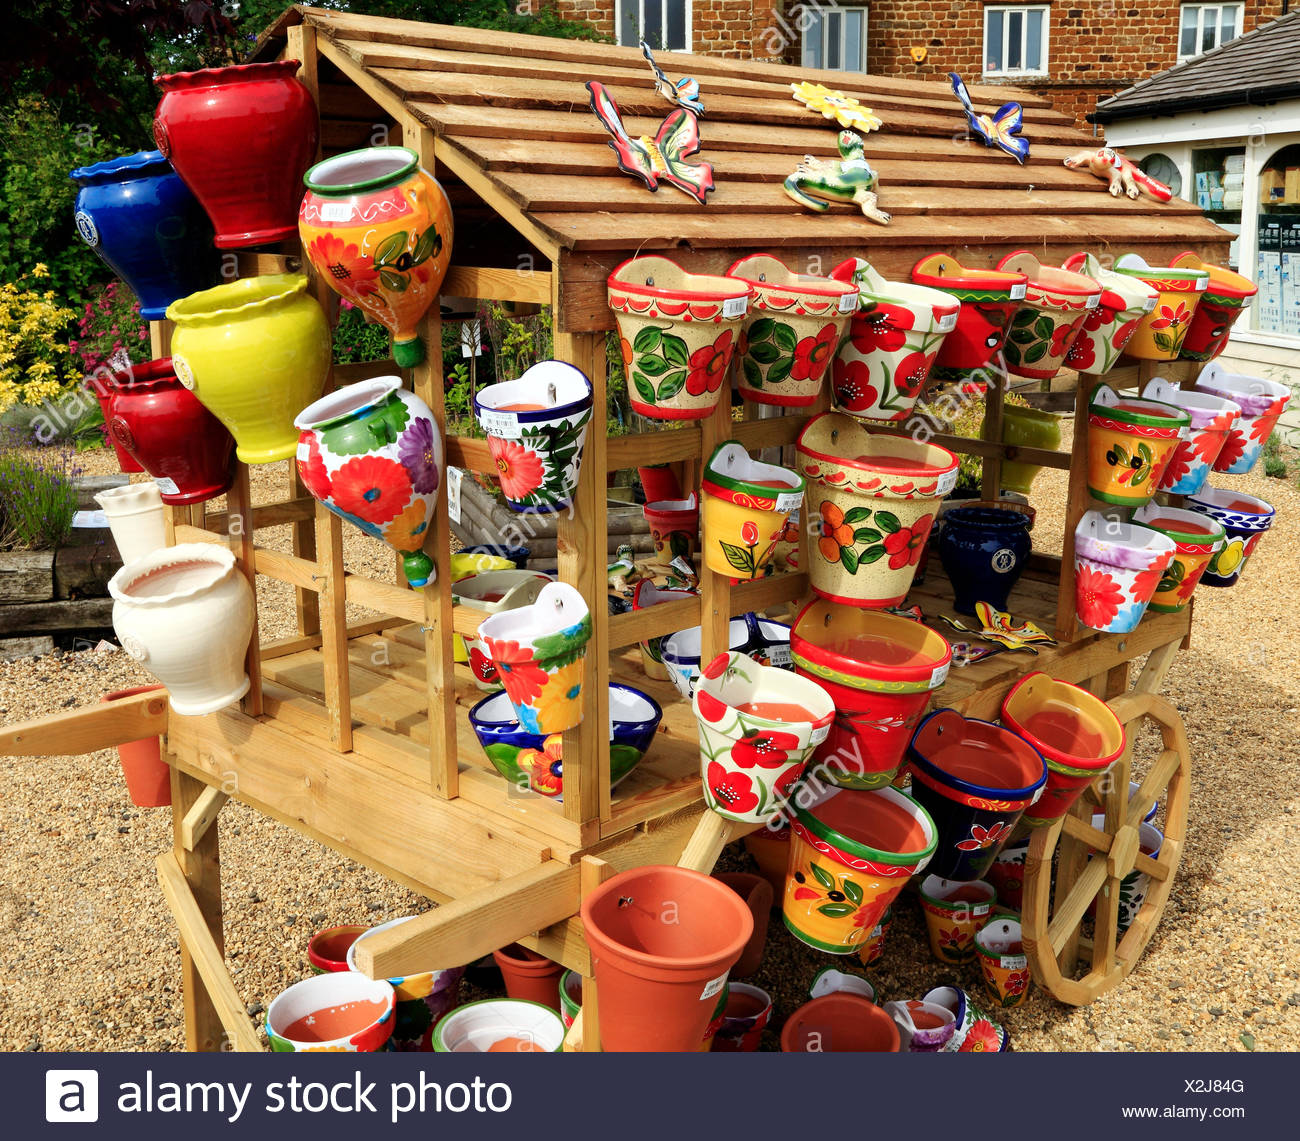 Colourful, Colorful, Decorative, Pots, Planters, Containers, Garden Nursery  Sales England